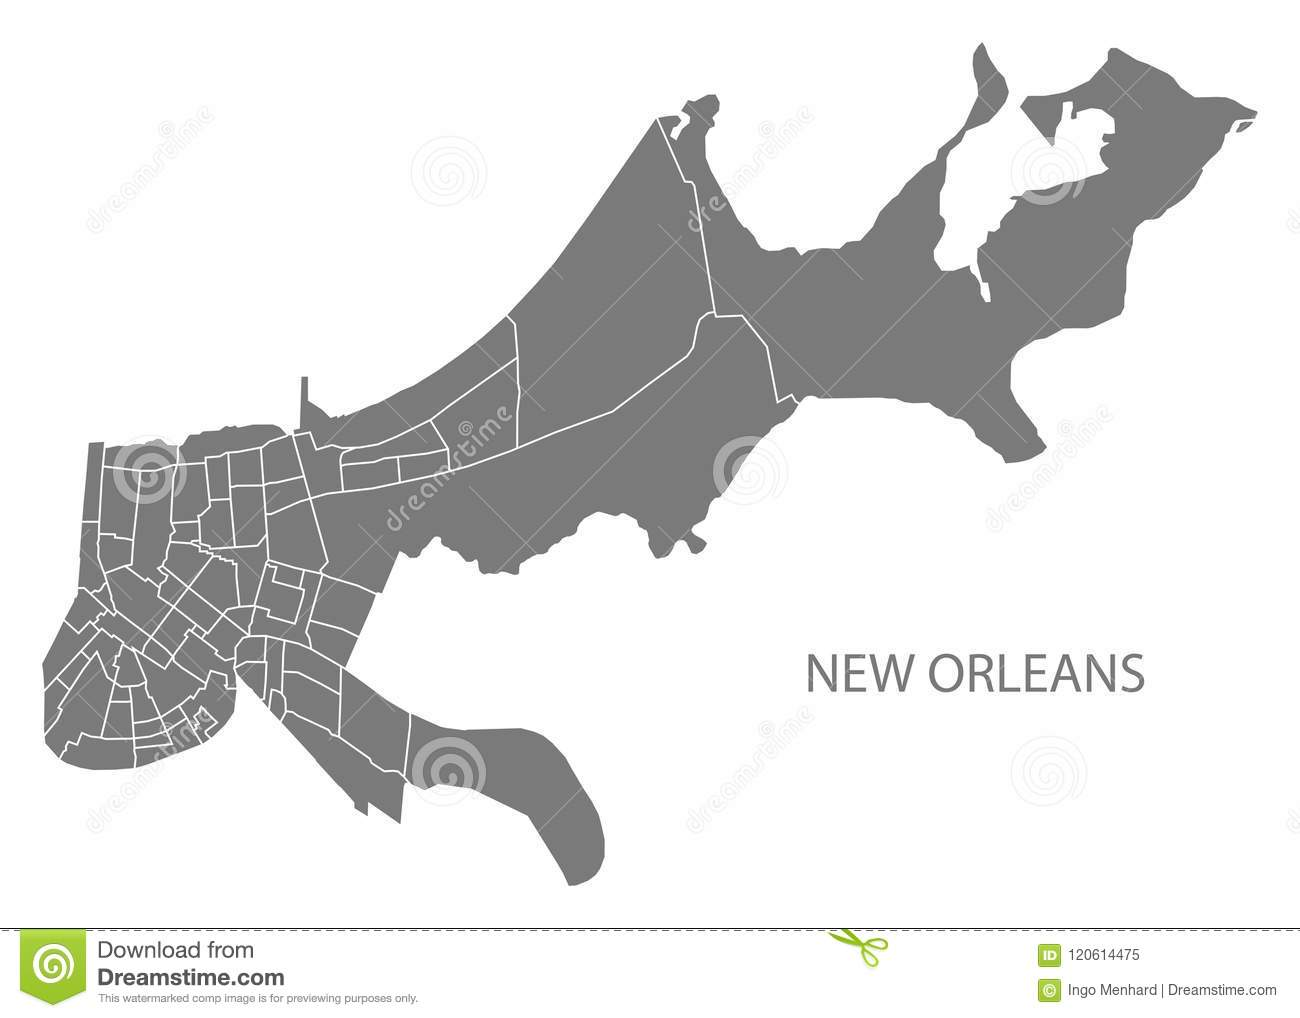 Louisiana New Orleans Map.New Orleans Louisiana City Map With Neighborhoods Grey Illustration